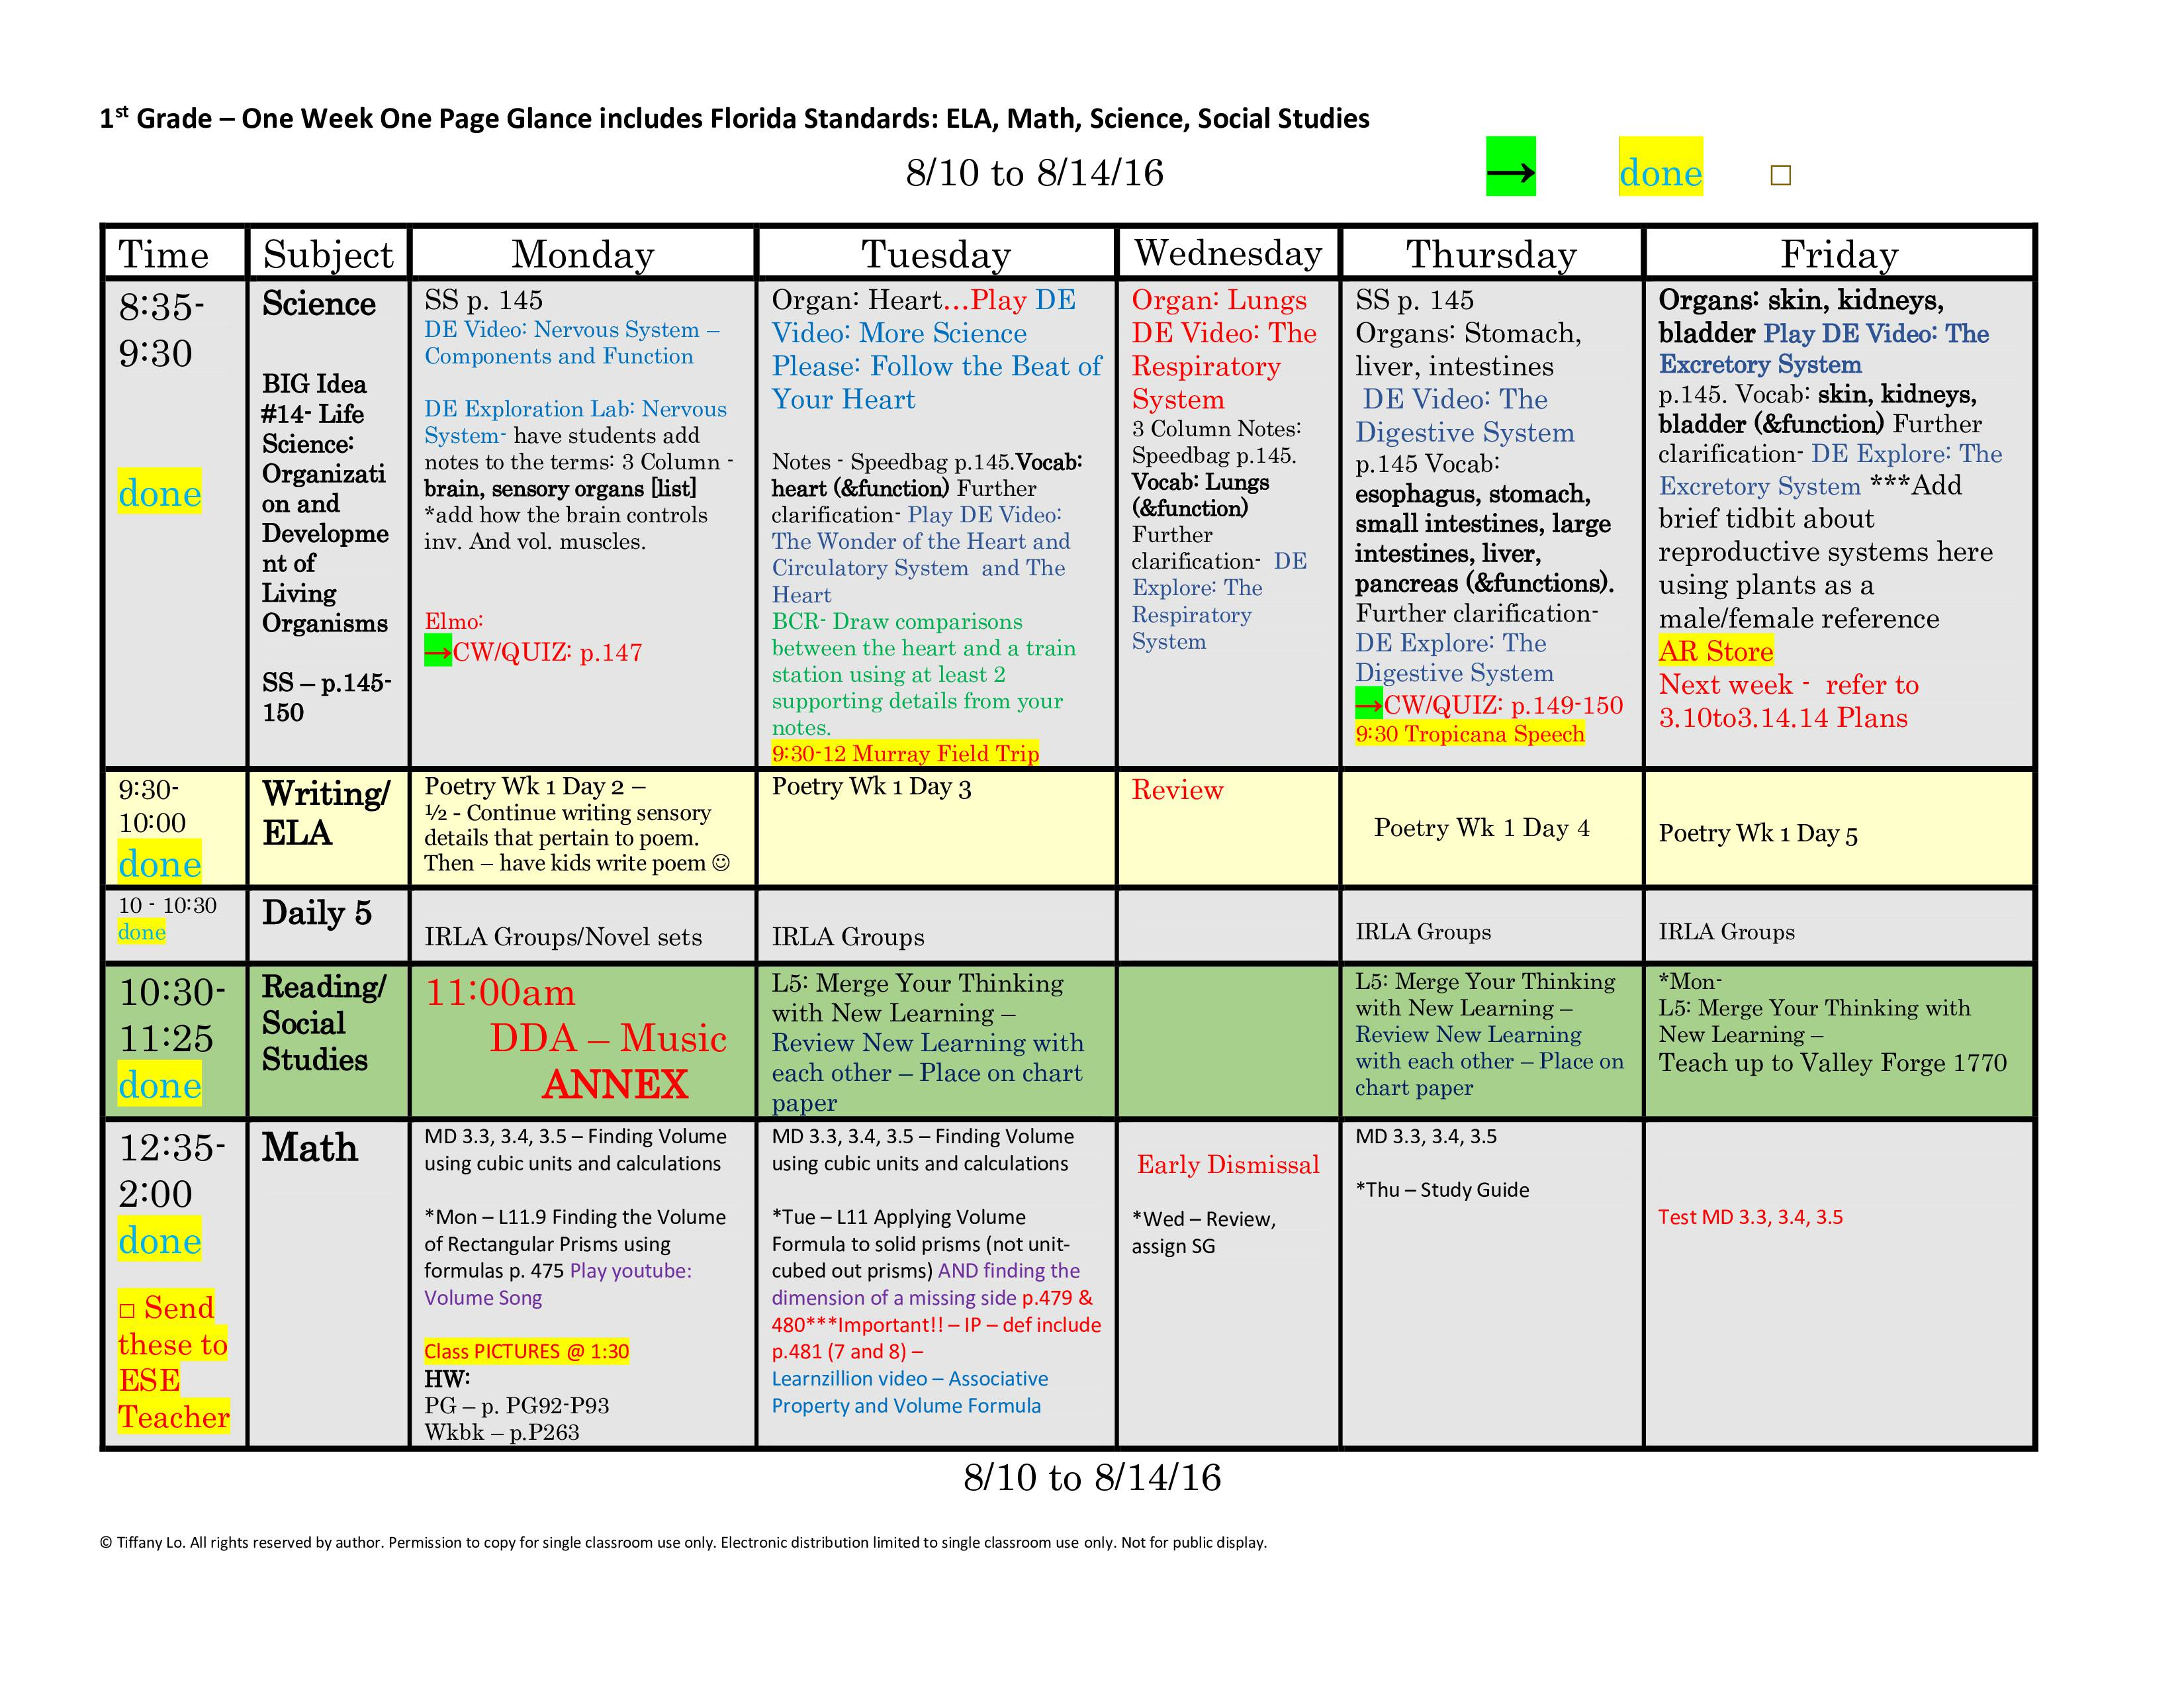 1st First Grade Florida Standards Weekly Lesson Plan